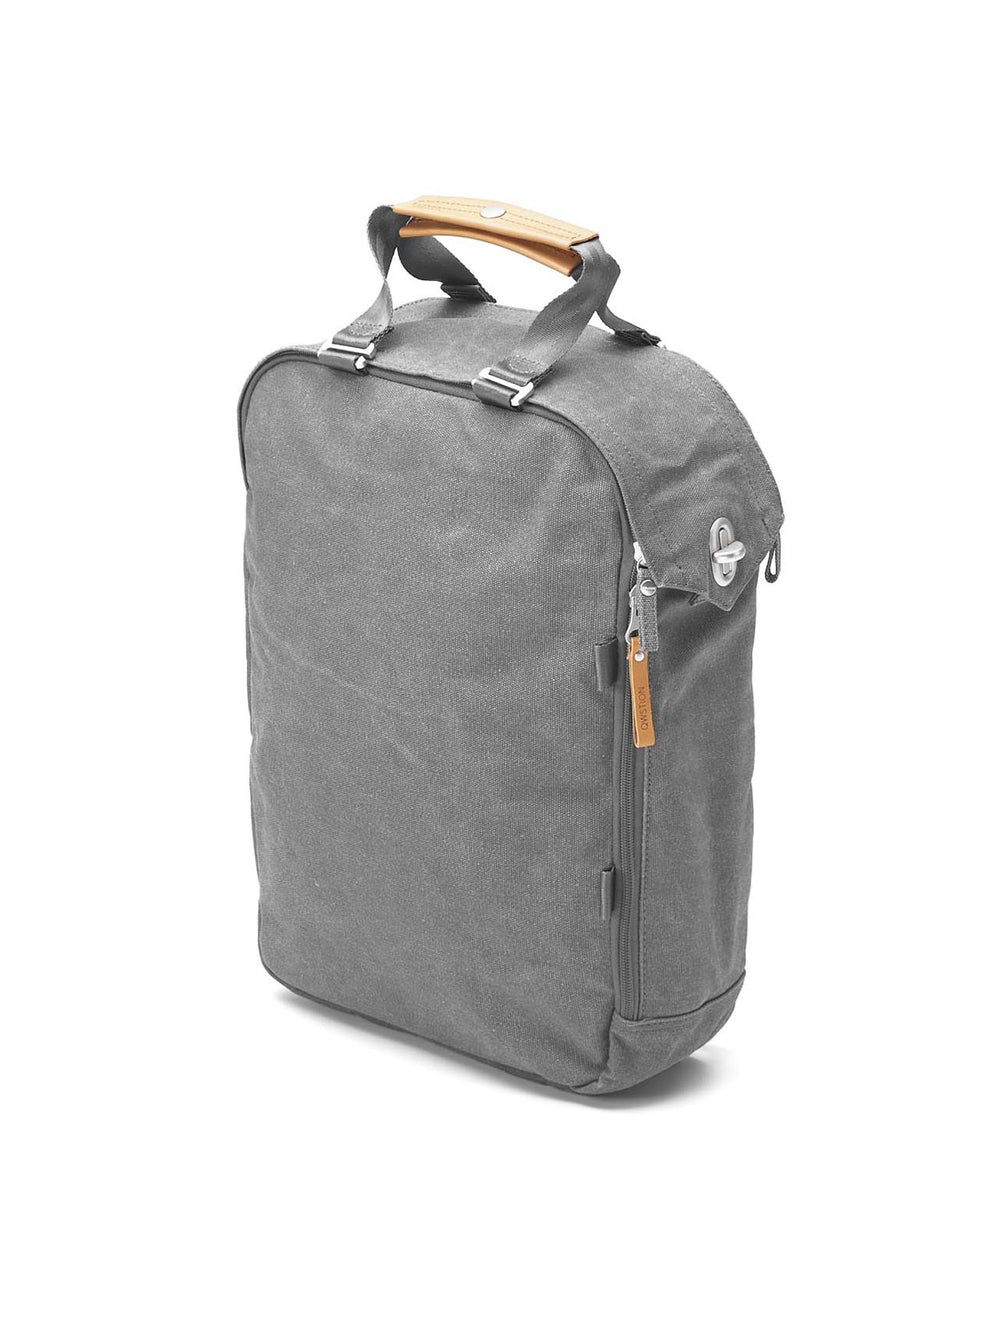 Minimalist Swiss design from Qwstion for this Daypack in Washed Grey